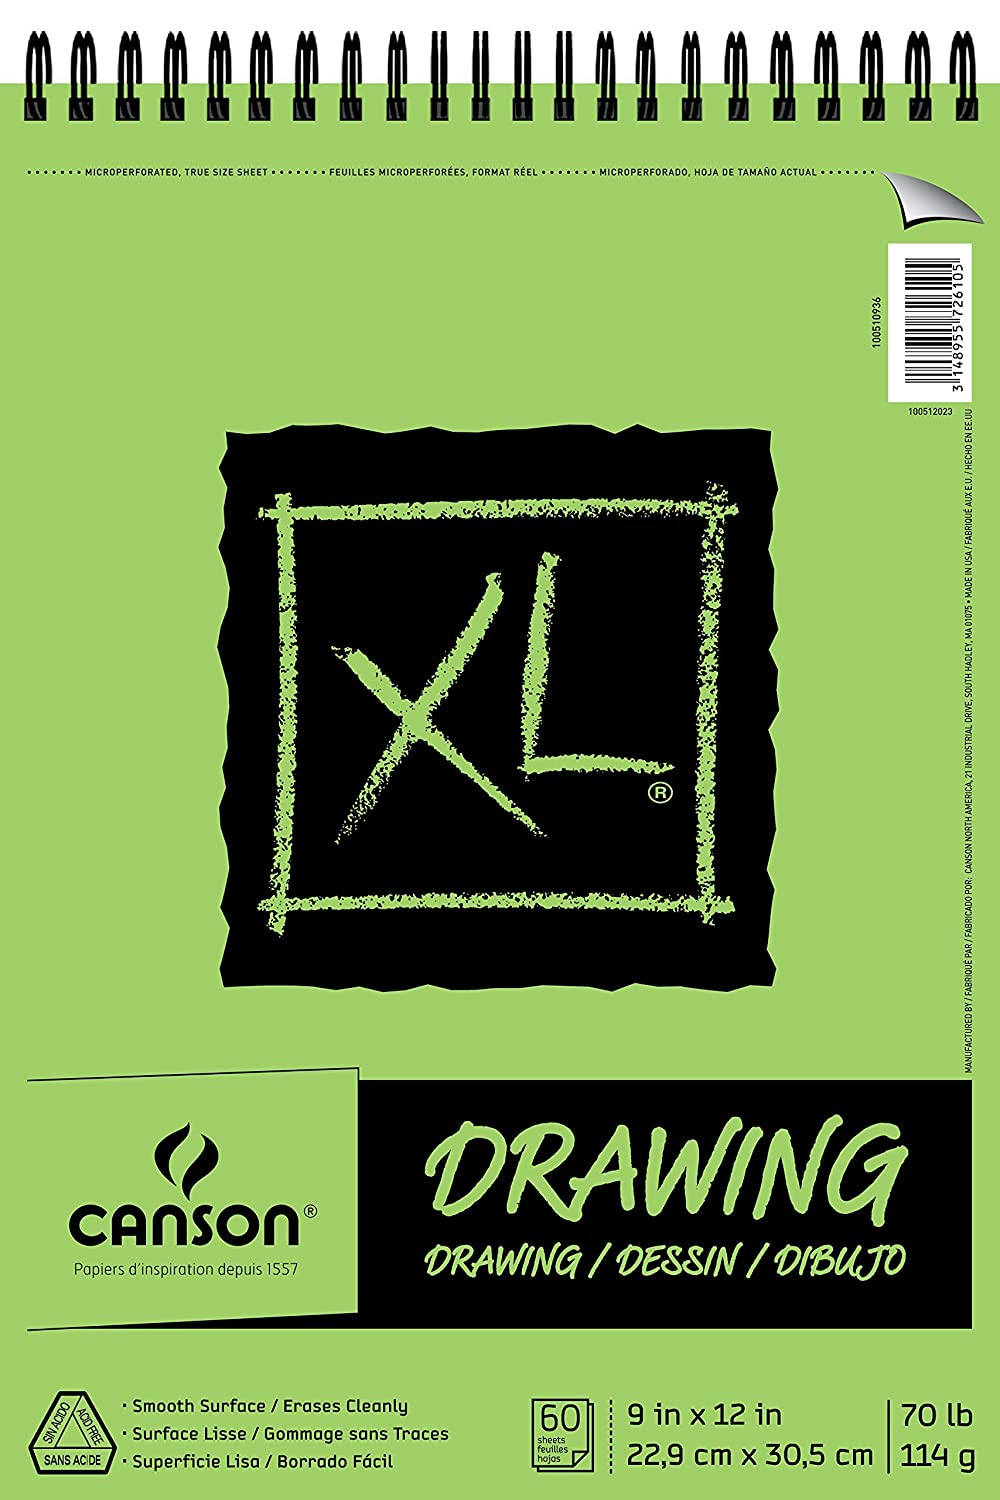 CANSON 70 lb/114g XL Drawing Pad, 9 x 12, 60 Sheets 9 x 12 Canson Inc. 100510936